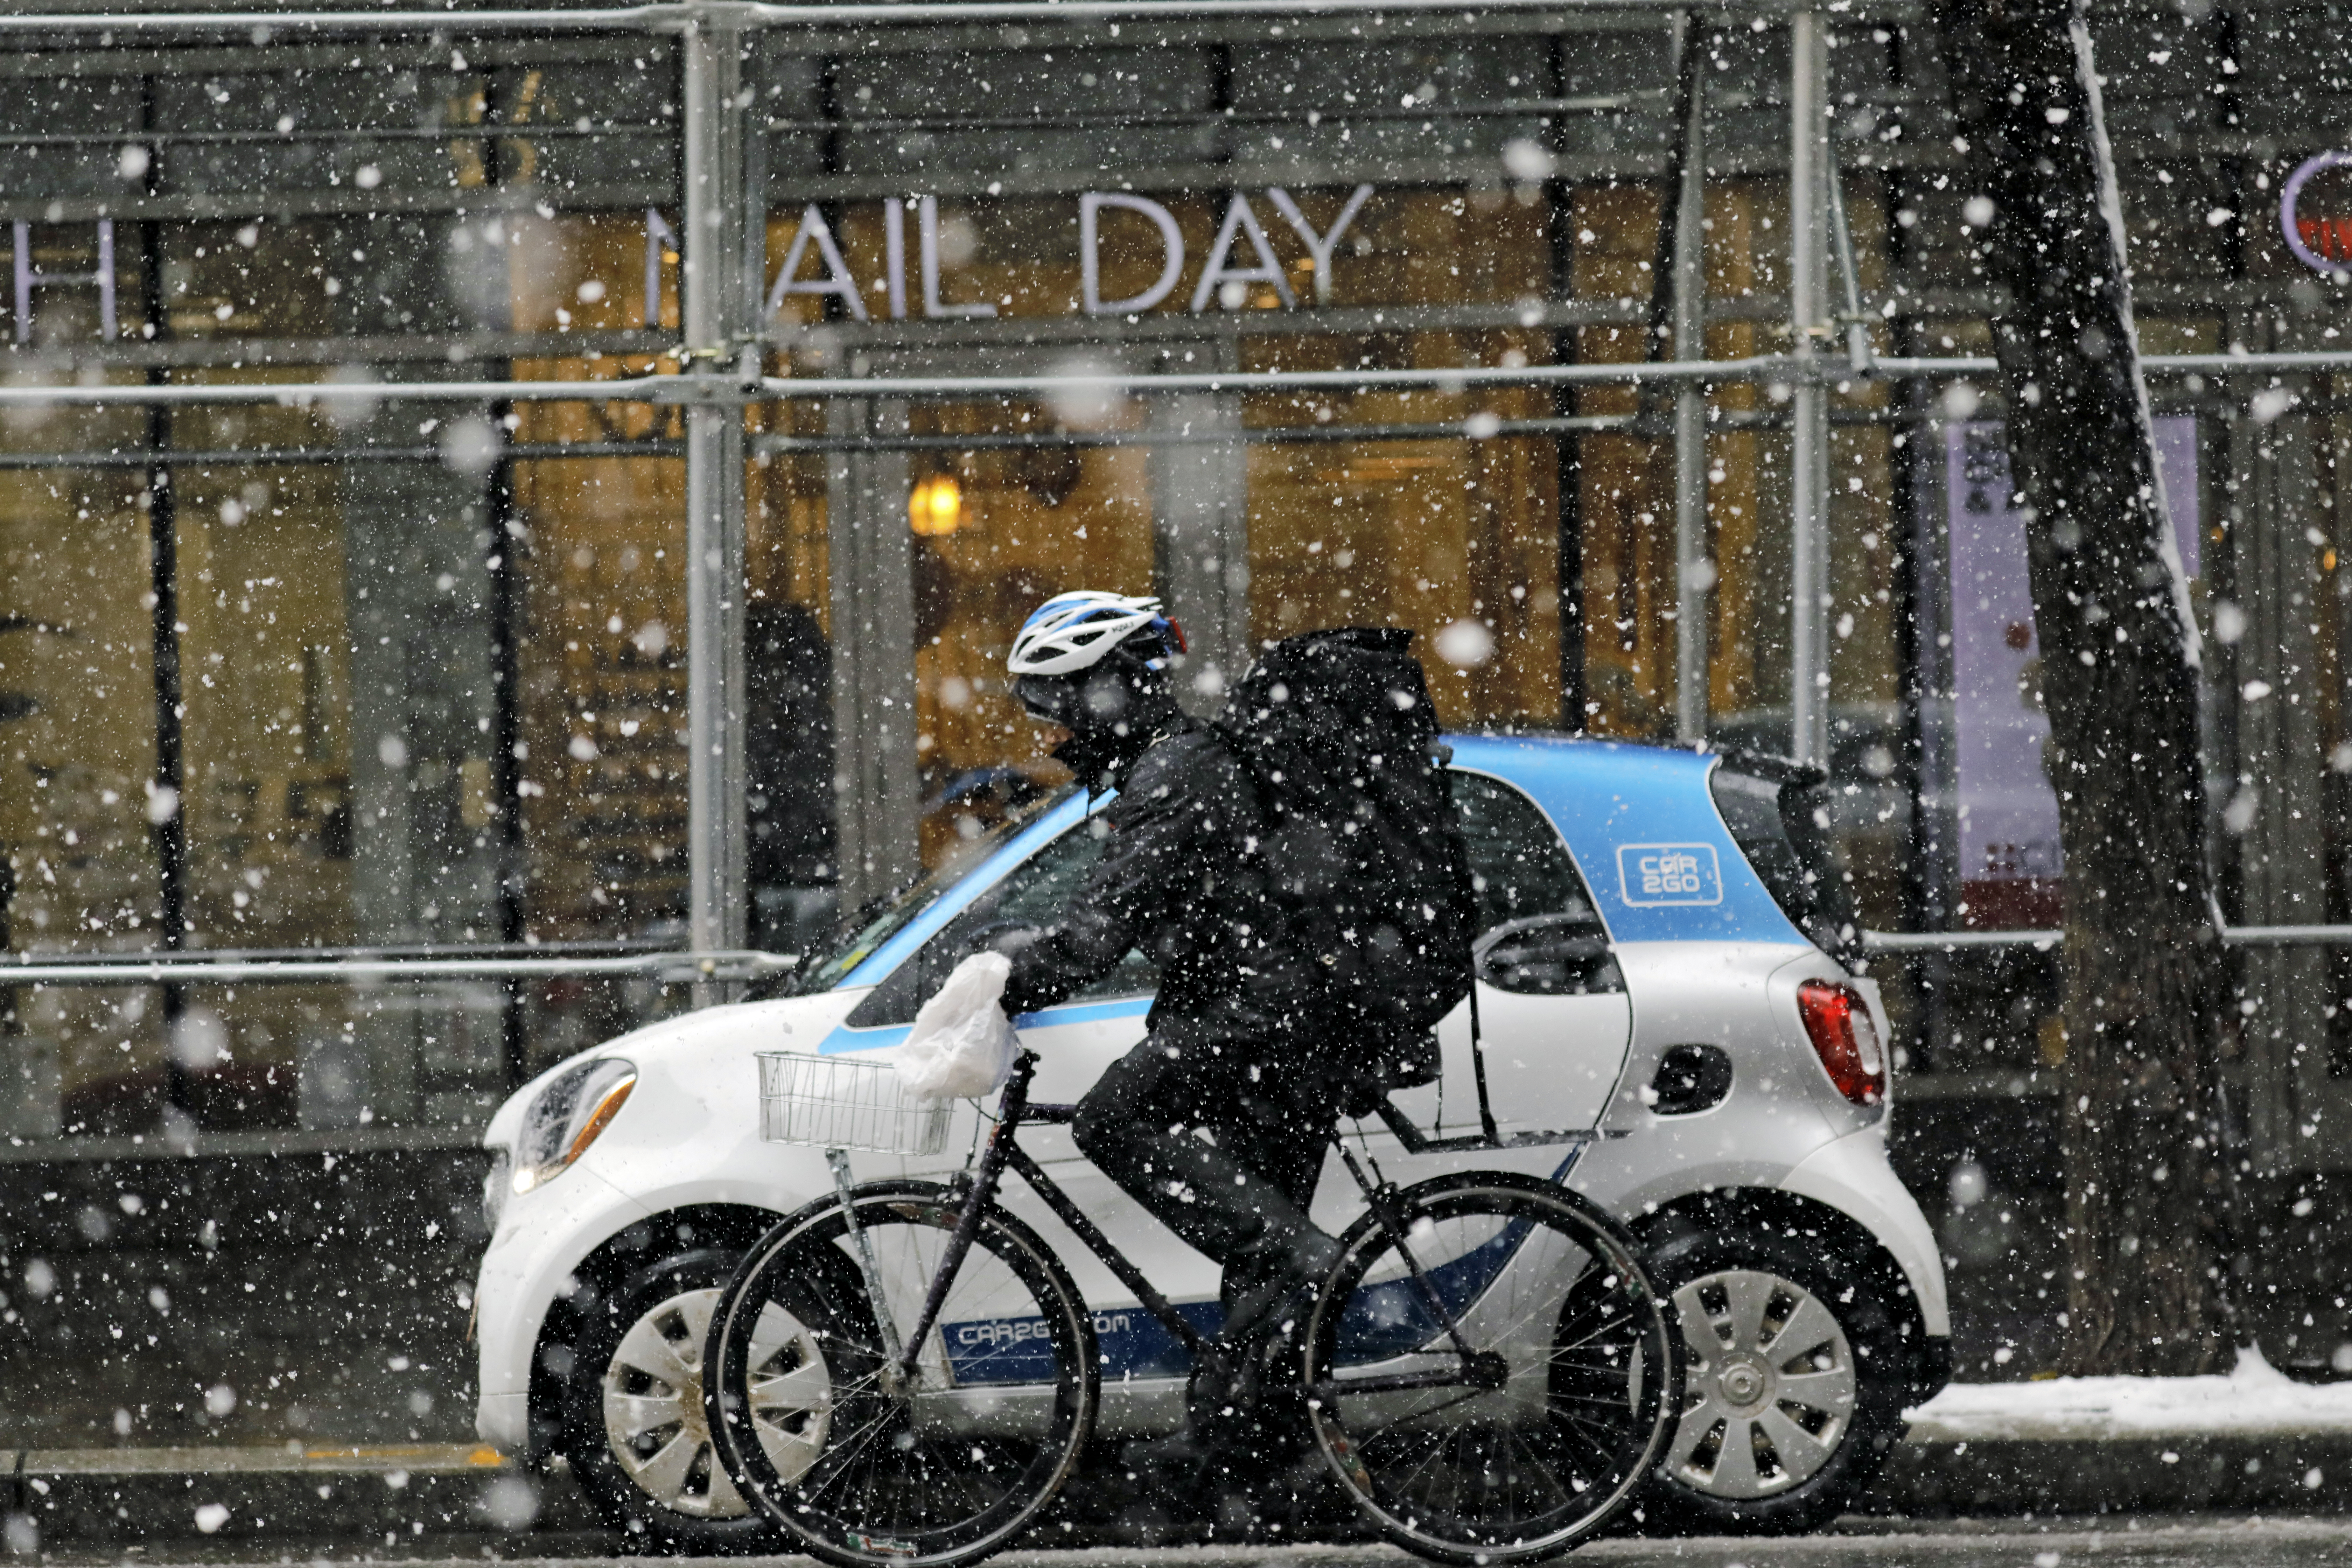 New York - NYC Weather: Snow And Bitter Cold Starting